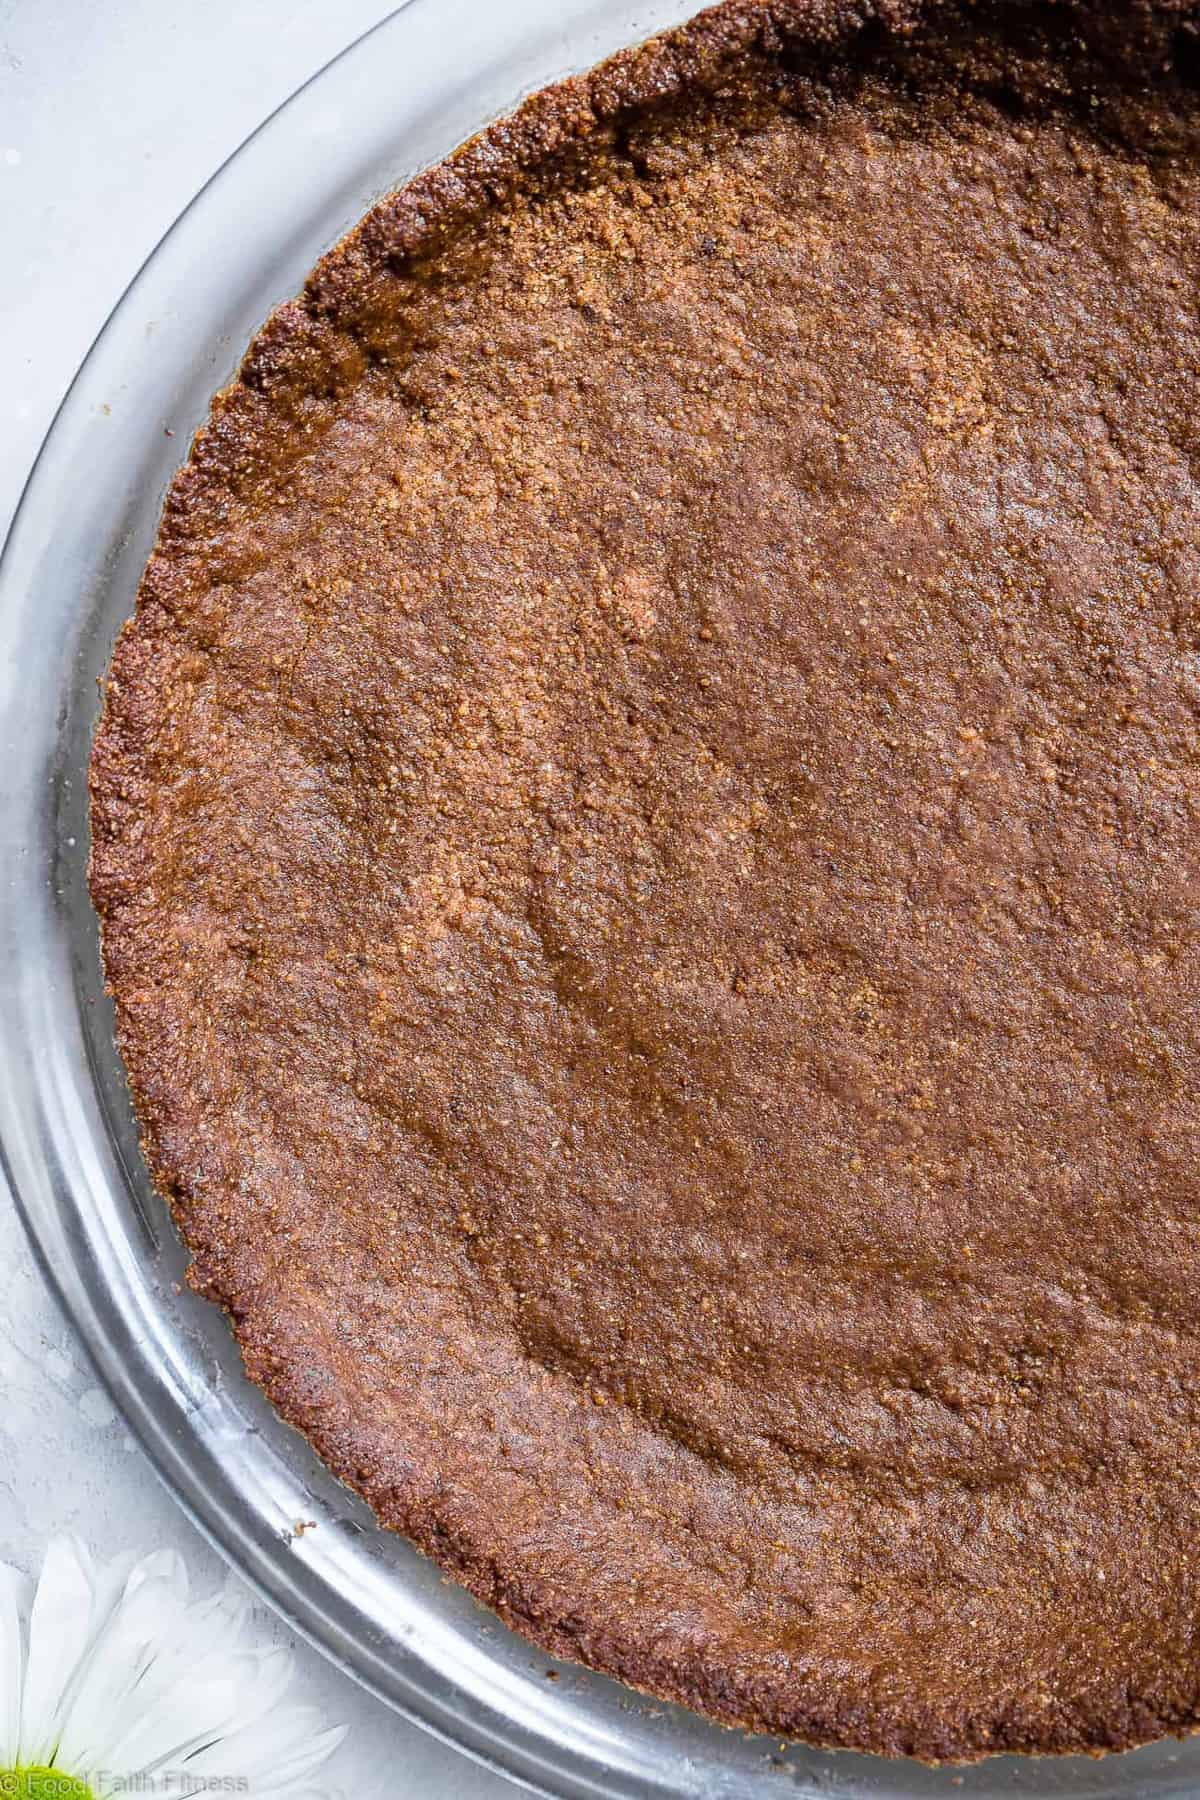 Low Carb Keto Gluten Free Graham Cracker Crust Recipe -  tastes like store bought but much better for you and sugar free! SO easy to make and perfect for SO many desserts! | #Foodfaithfitness | #Glutenfree #Keto #Lowcarb #Paleo #Sugarfree